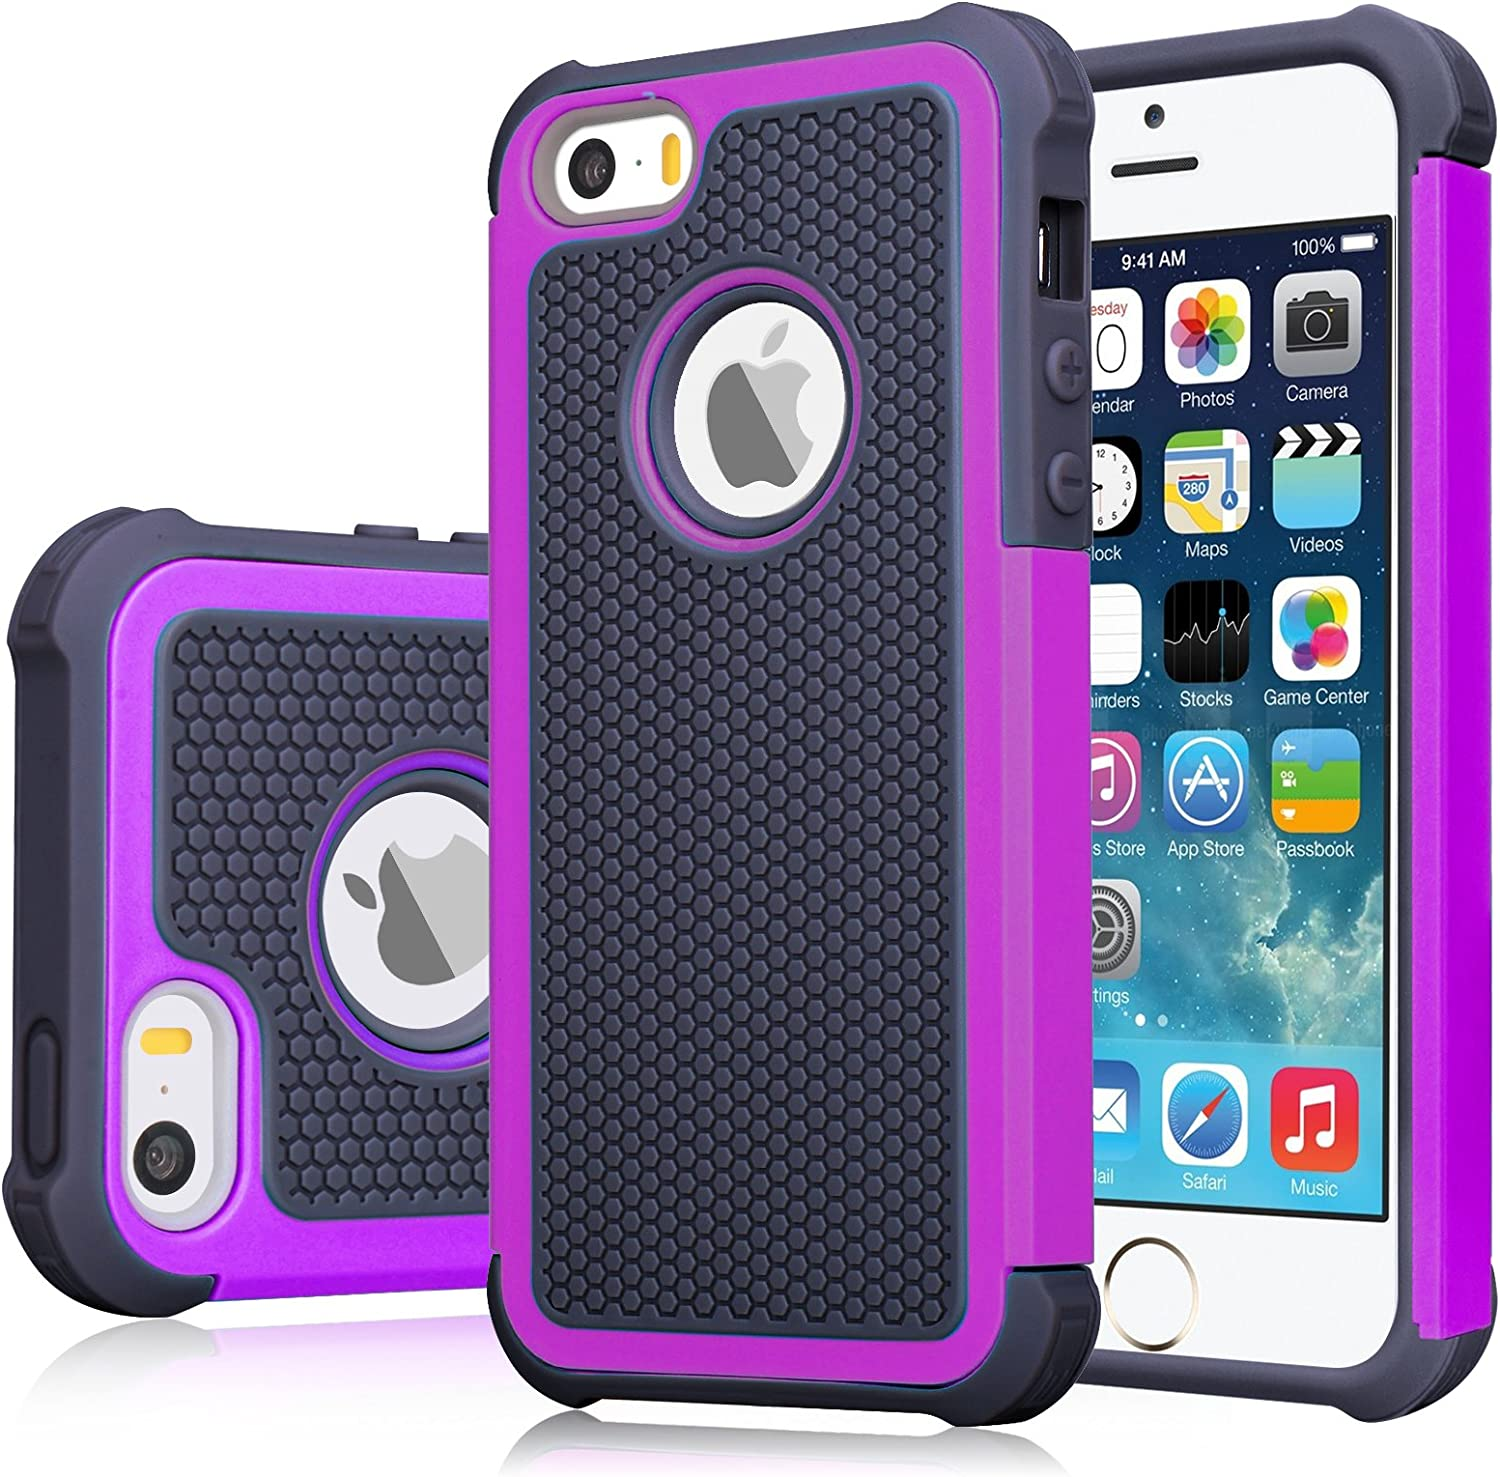 iPhone SE Case, iPhone 5S Cover, Jeylly Shock Absorbing Hard Plastic Outer + Rubber Silicone Inner Scratch Defender Bumper Rugged Hard Case Cover for Apple iPhone SE/5S - Black